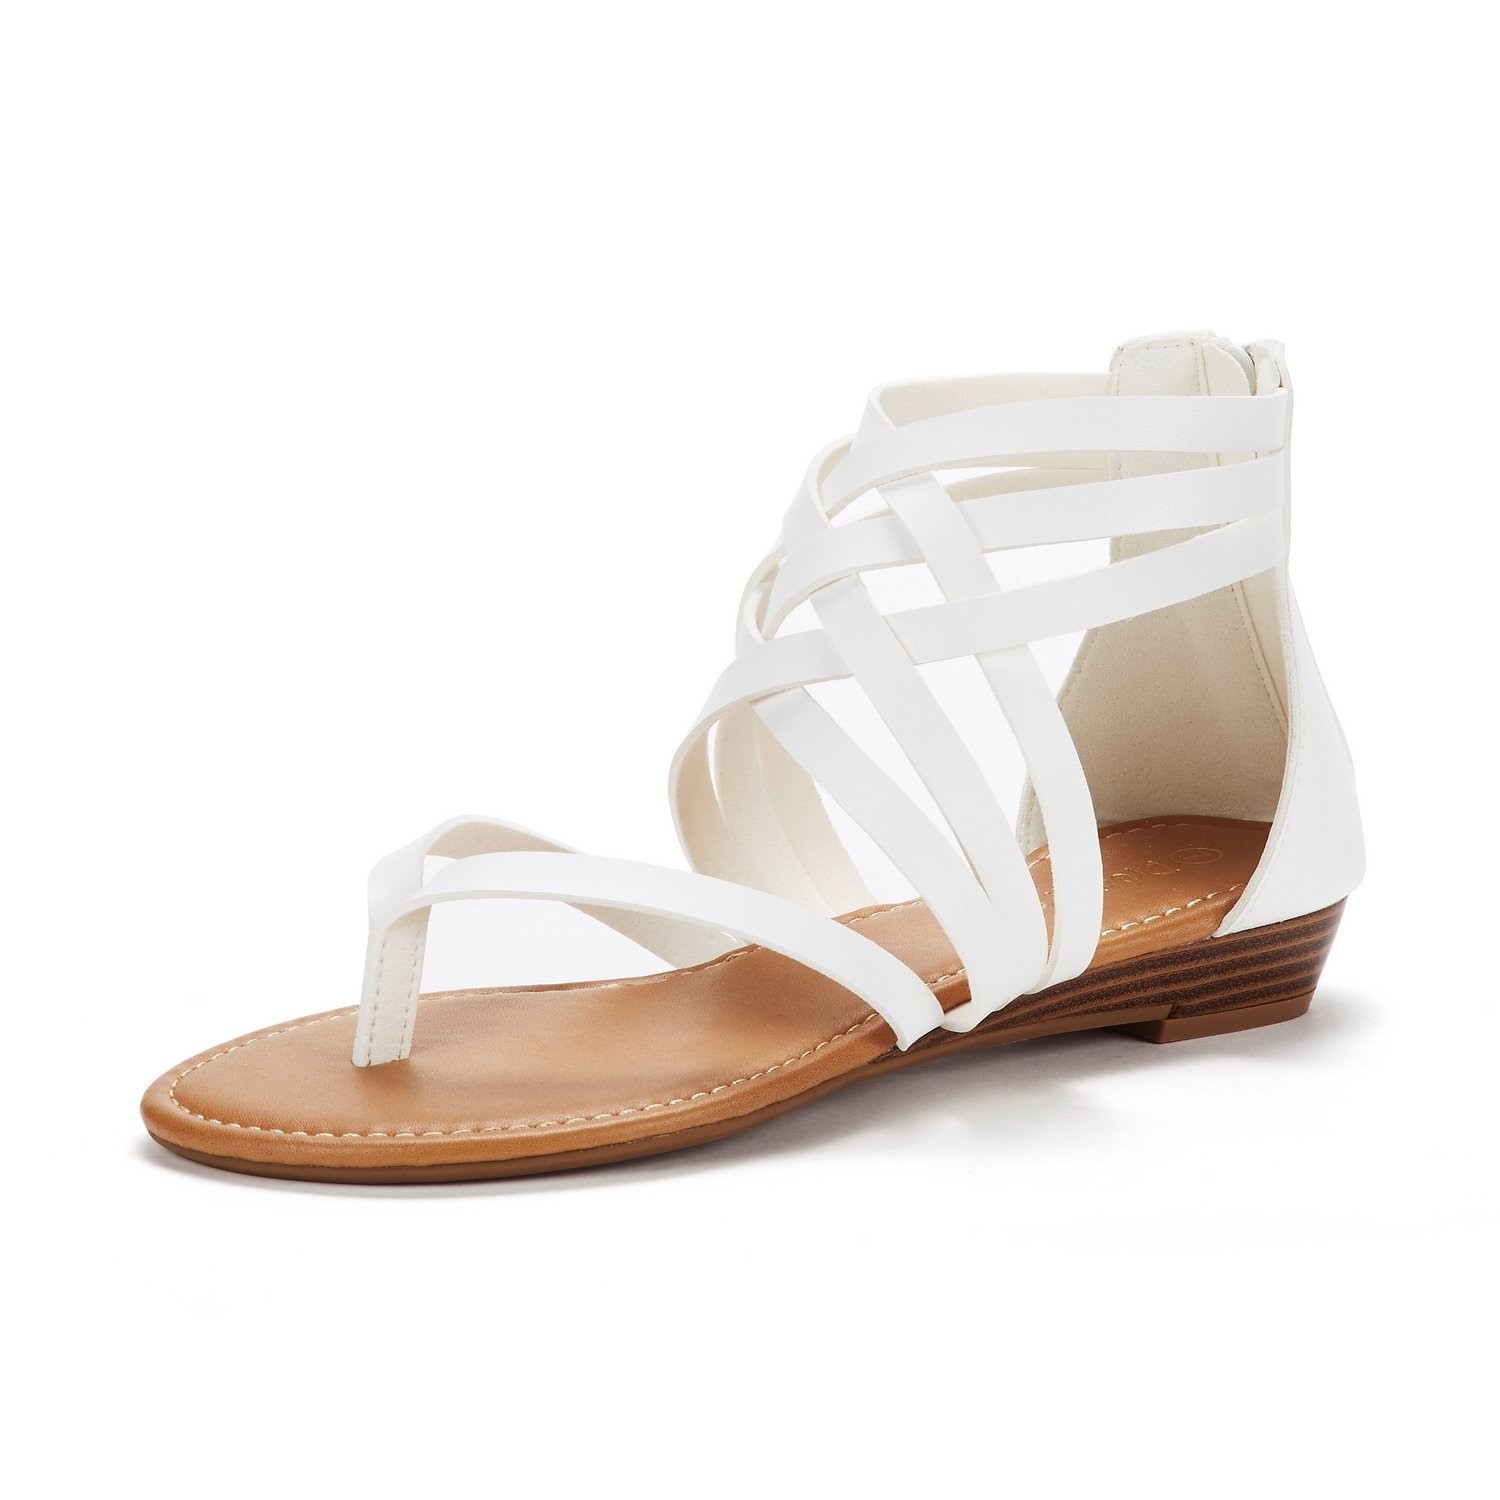 DREAM PAIRS Women's JUULY_02 White Fashion Gladiator Design Ankle Strap Flat Sandals Size 7.5 M US